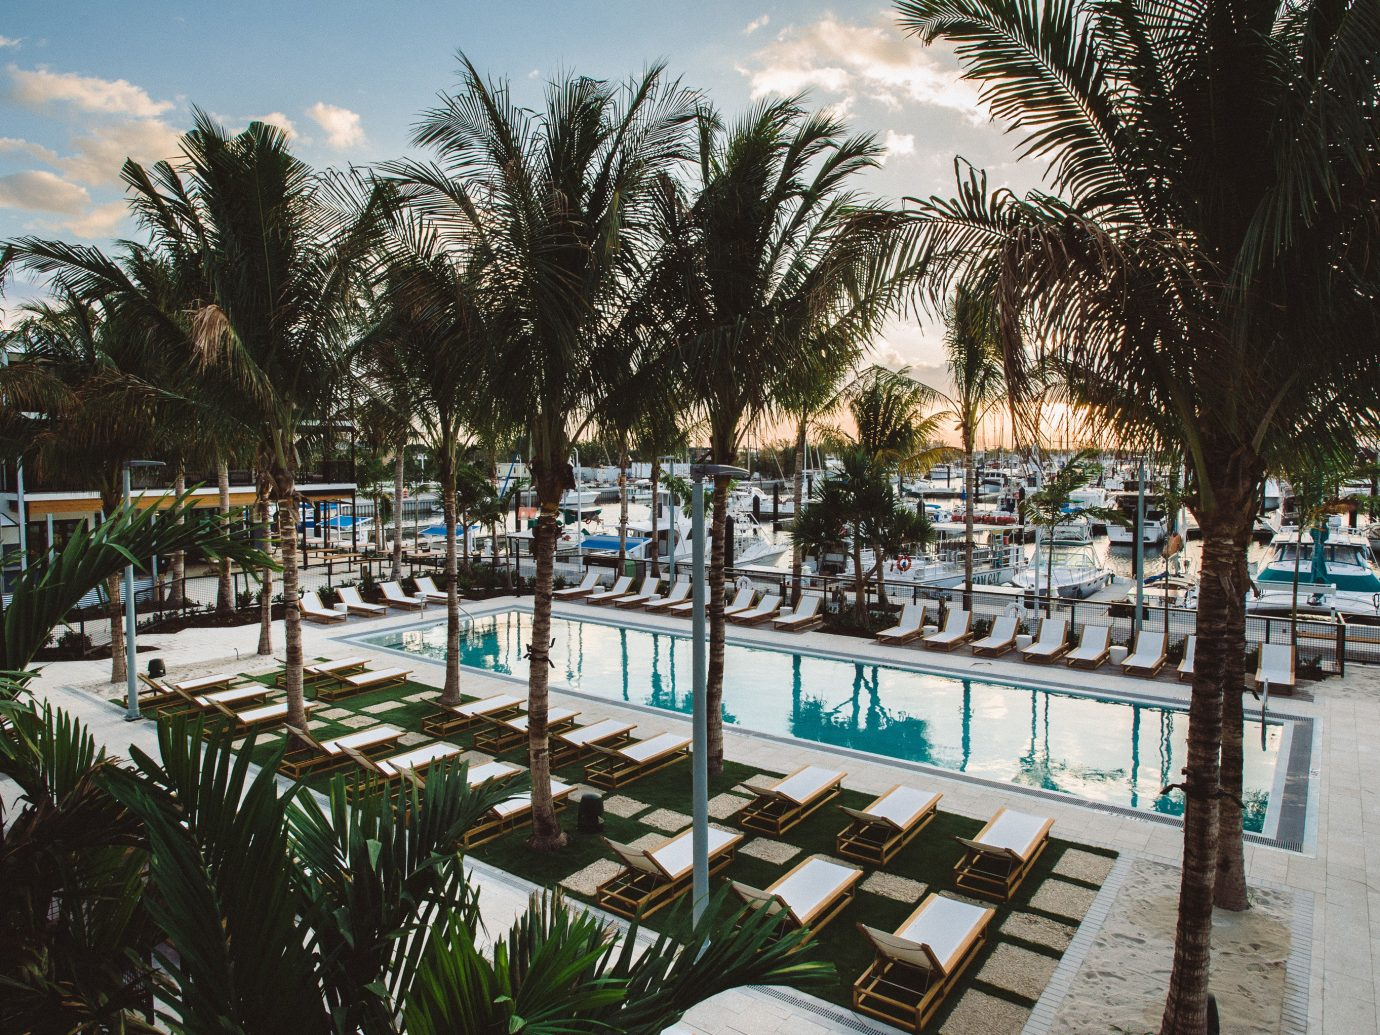 Florida Hotels tree outdoor Resort water palm tree arecales swimming pool leisure plant vacation palm hotel park lined tourism recreation condominium tropics area shore furniture several